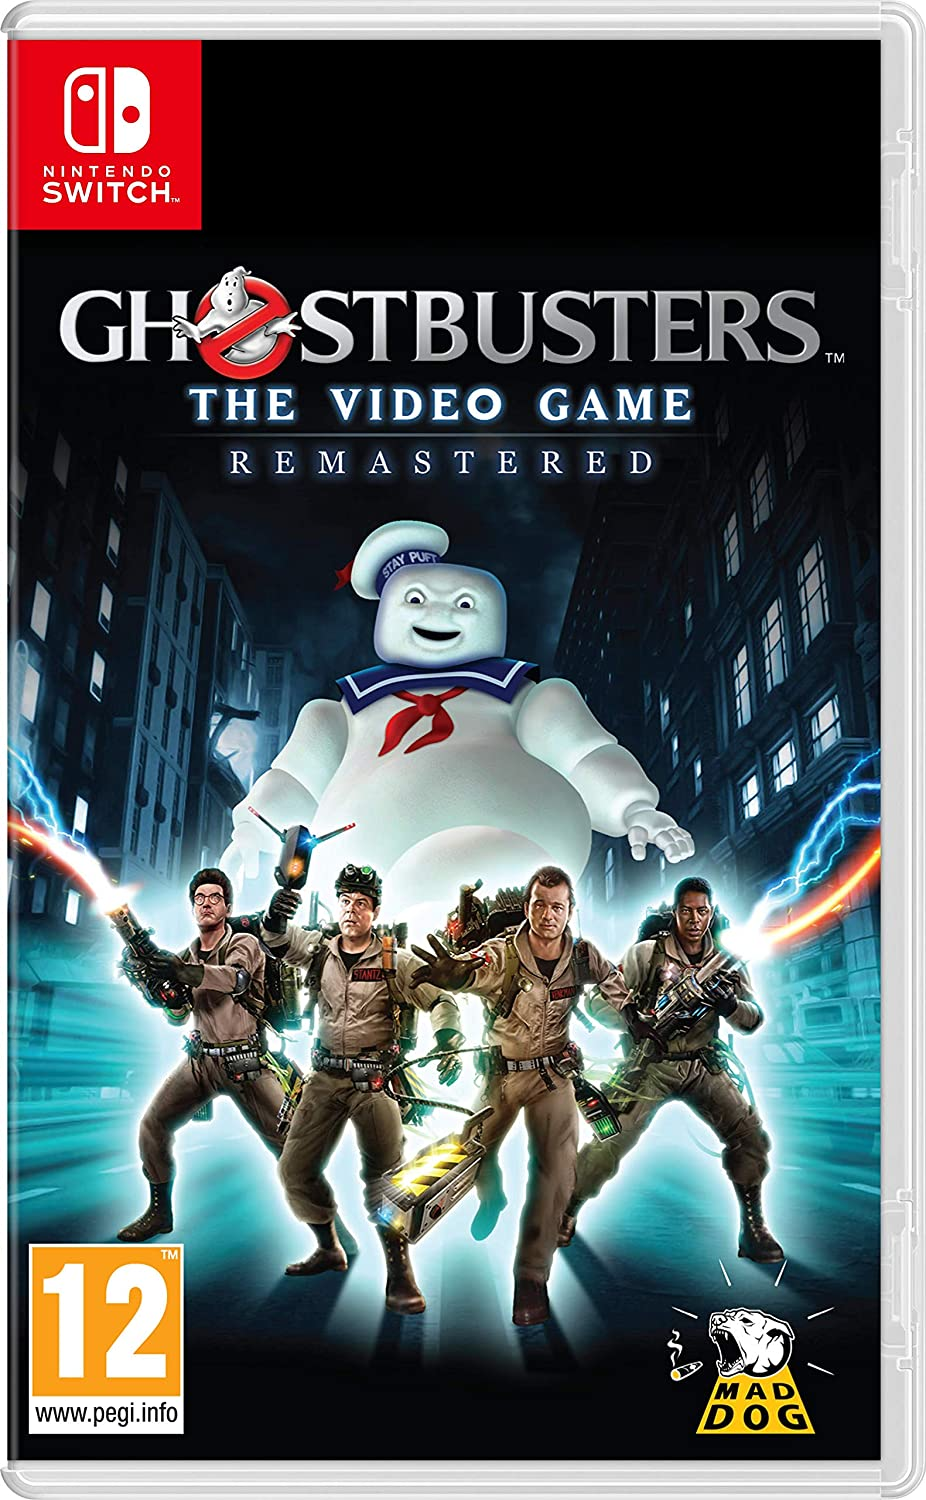 Ghostbusters The Videogame Remastered - Nintendo Switch: Amazon.es: Videojuegos